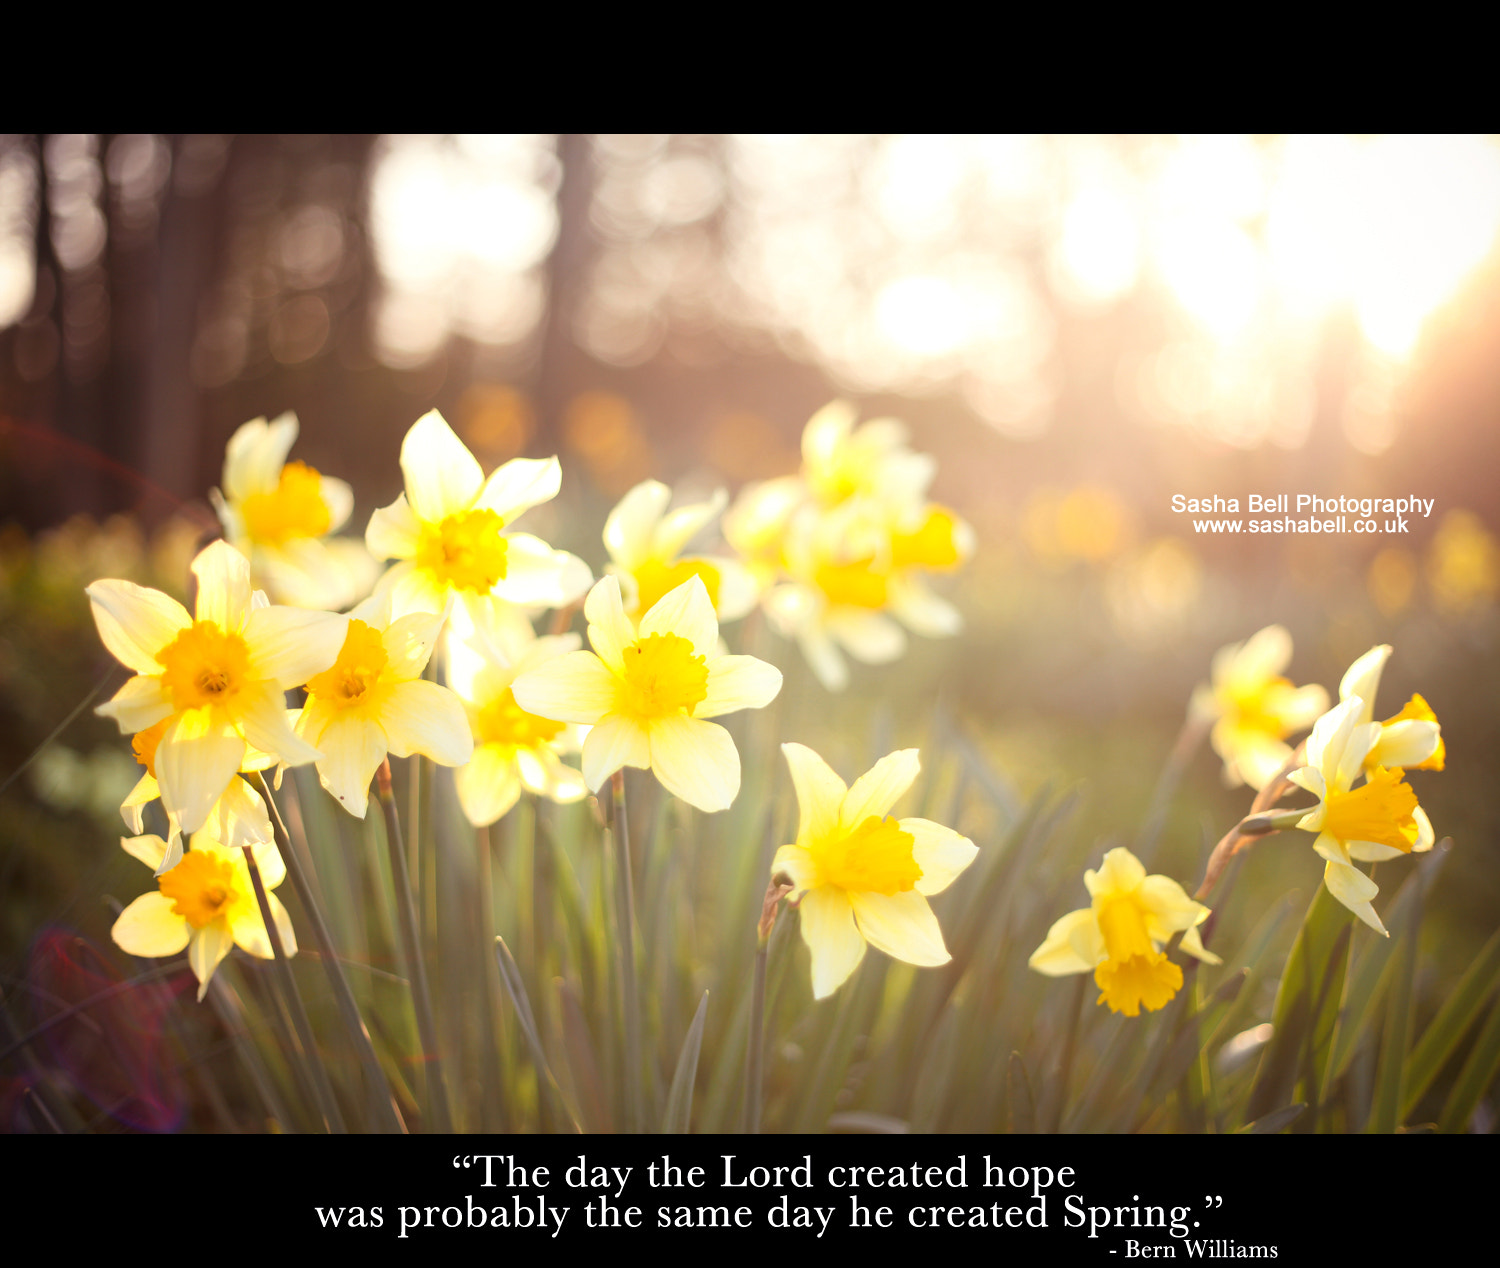 """Photograph """"The day the Lord created hope was probably the same day he created Spring"""" by Sasha L'Estrange-Bell on 500px"""